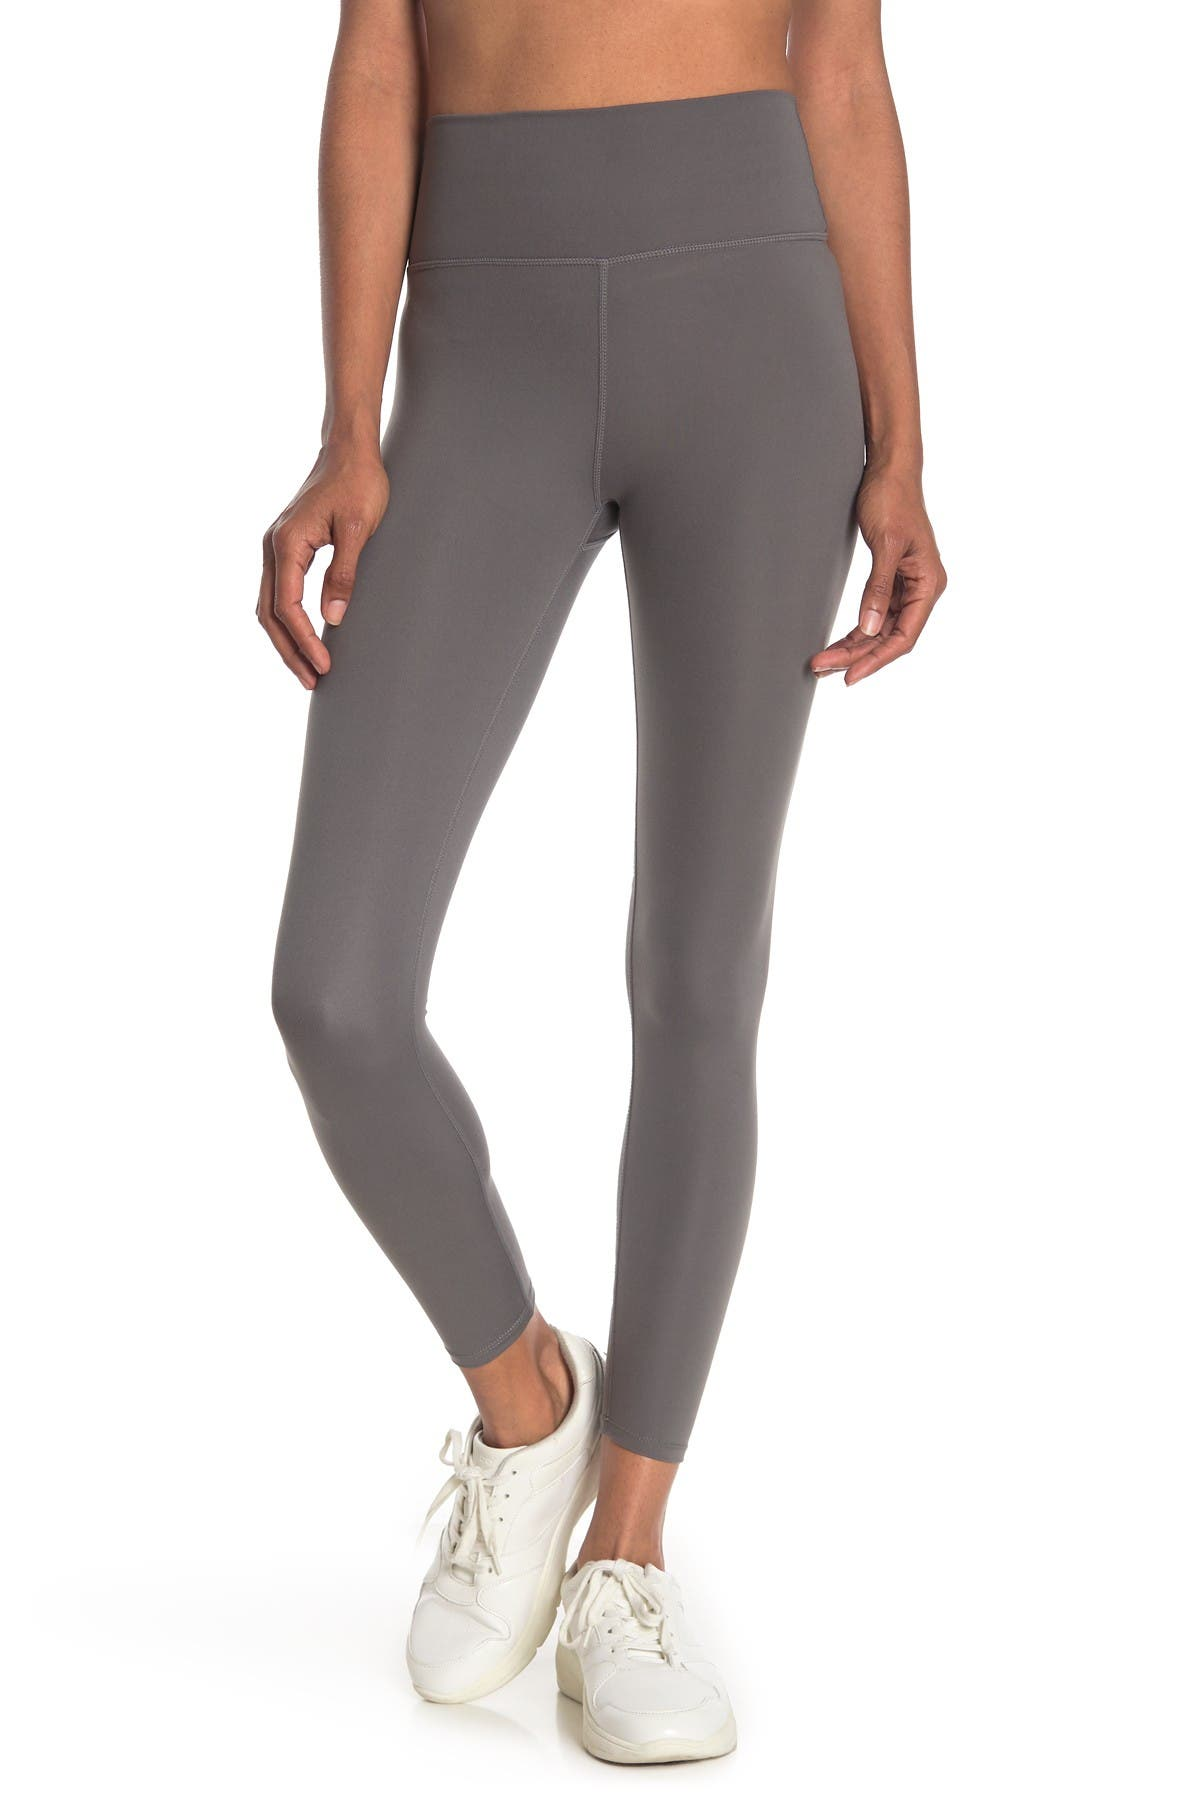 Image of SAGE COLLECTIVE High Waisted Leggings